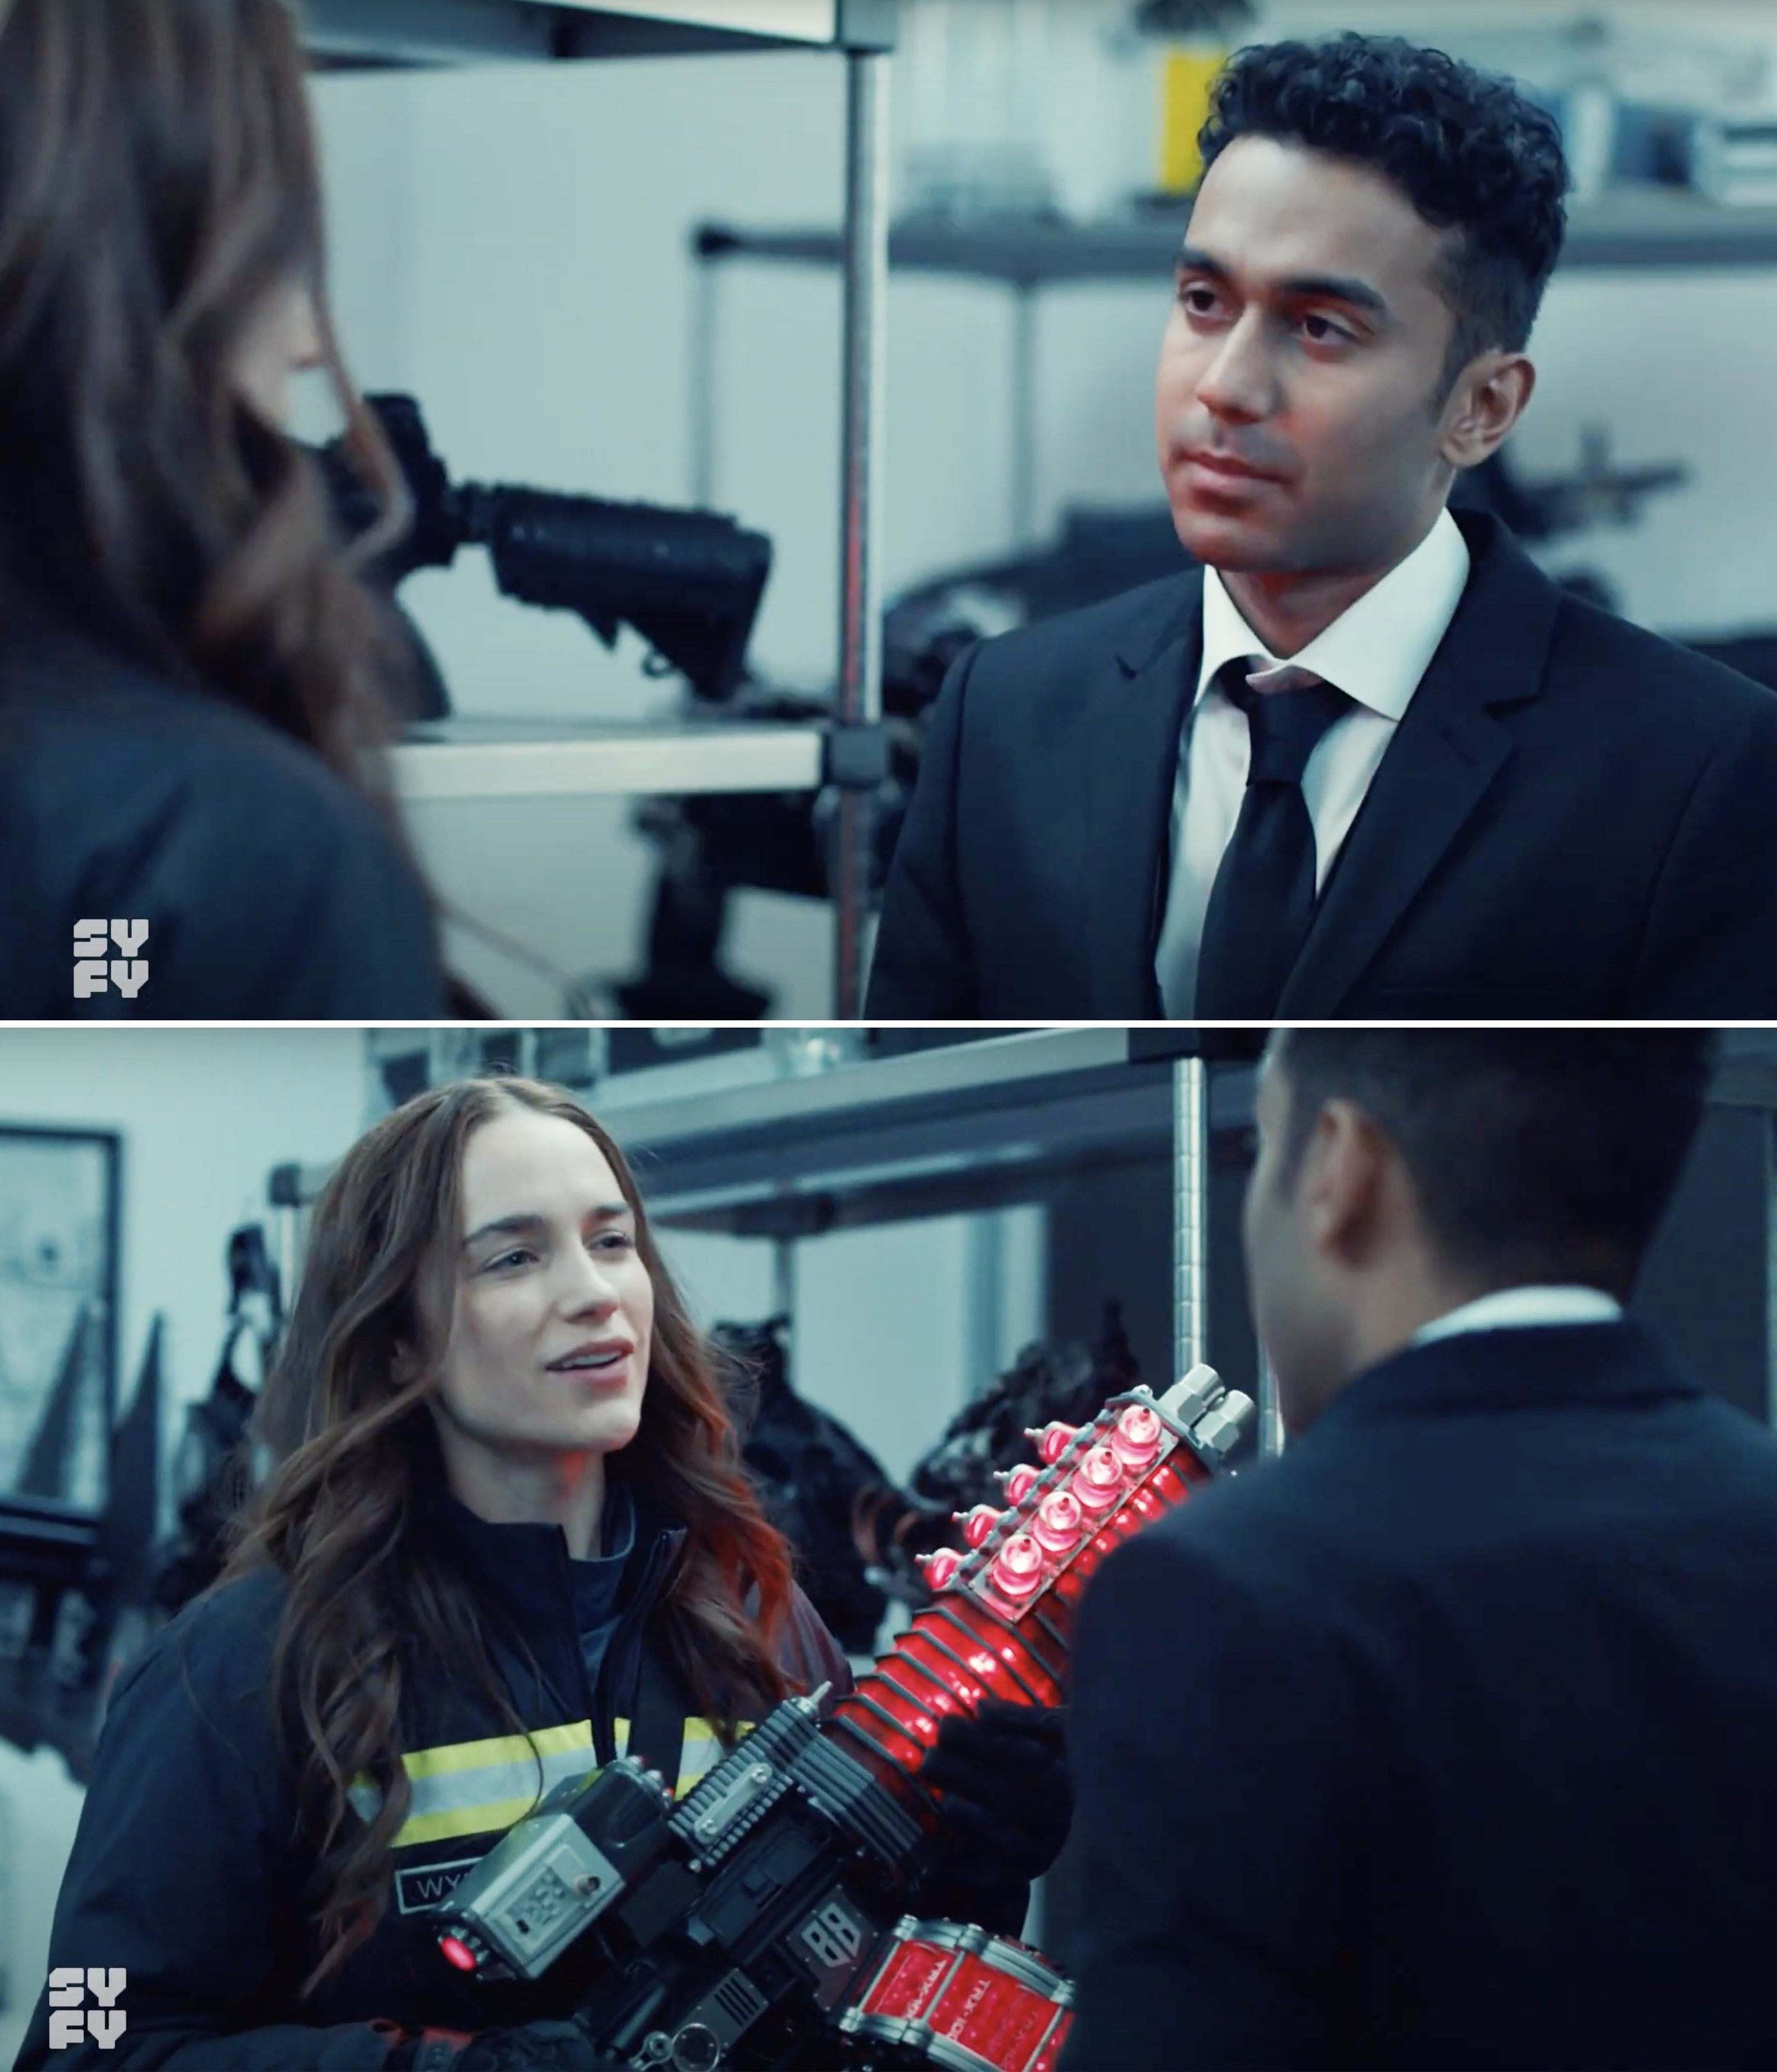 Wynonna holding a giant red gun in front of Jeremy in a suit